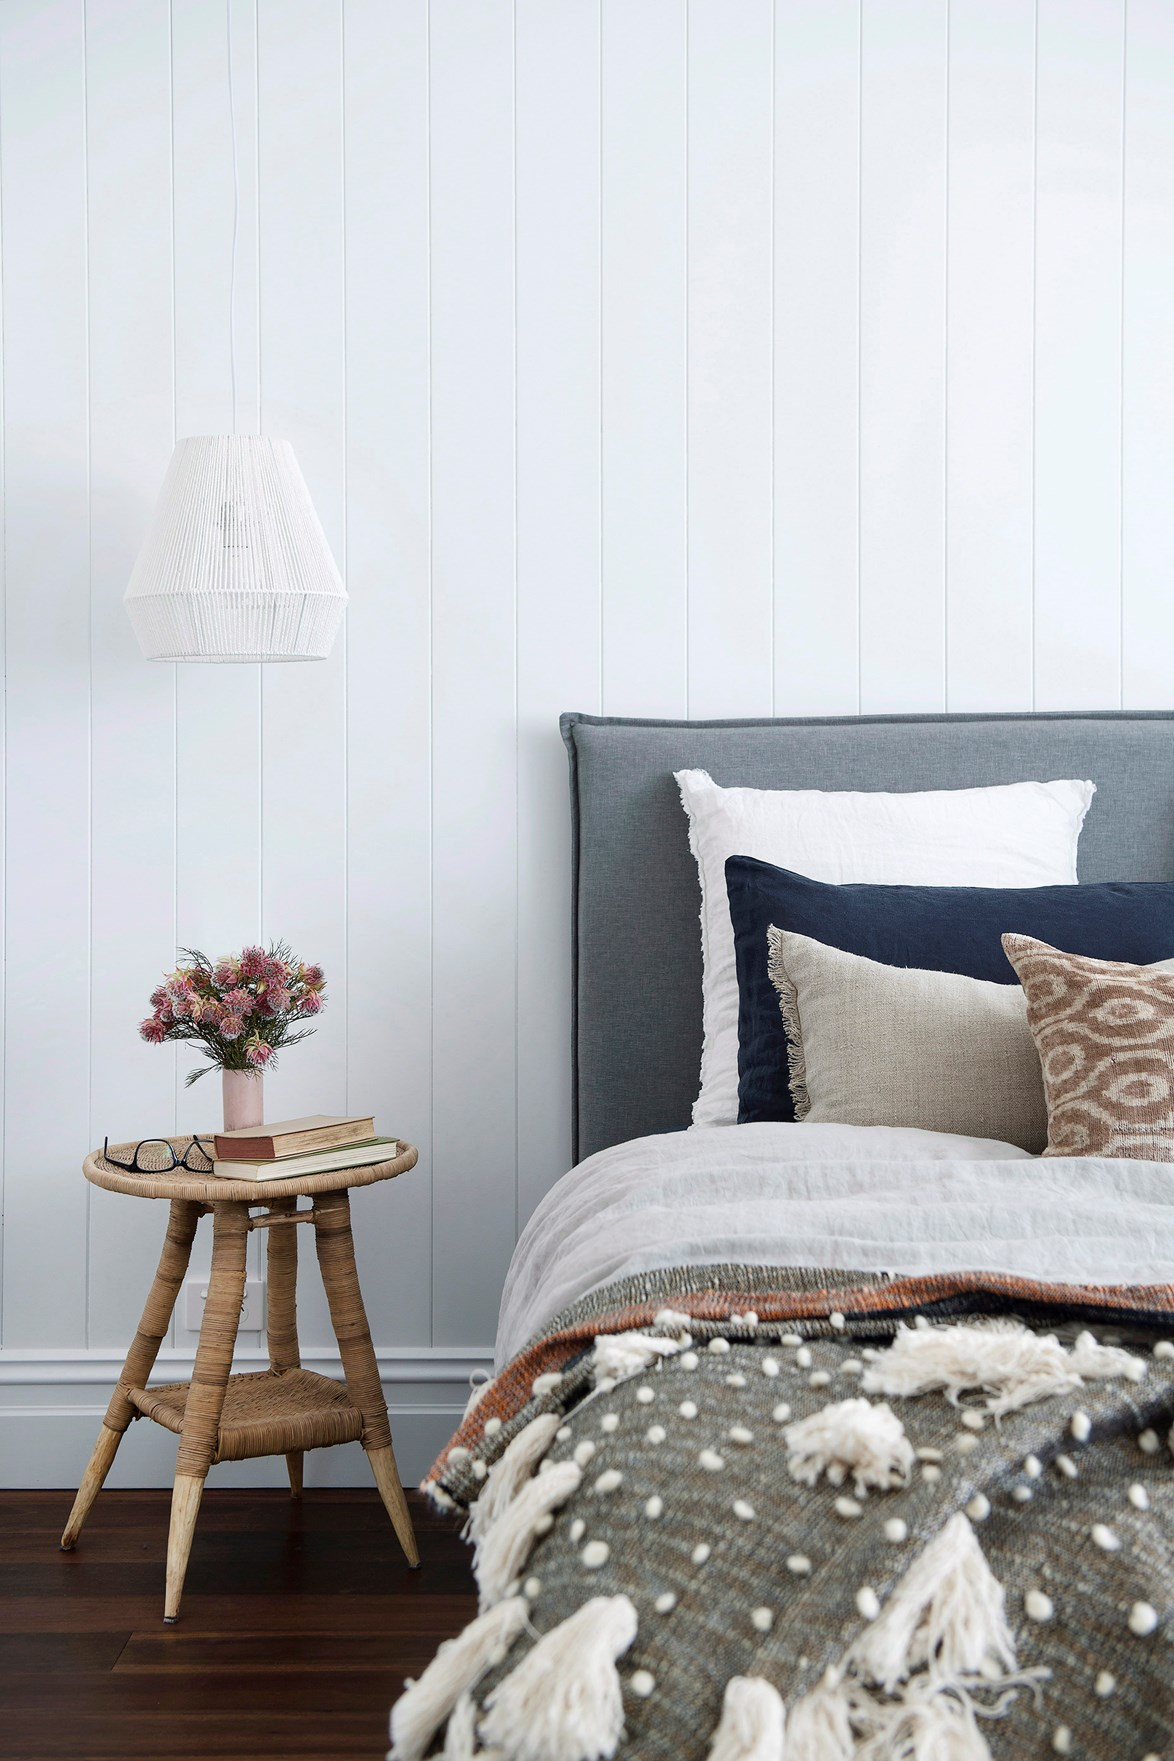 "Has your spare room becoming a dumping ground for junk? Turn it into an inviting [guest bedroom](http://www.homestolove.com.au/7-shortcuts-to-create-the-perfect-guest-bedroom-1729|target=""_blank"") that's always ready for visitors."